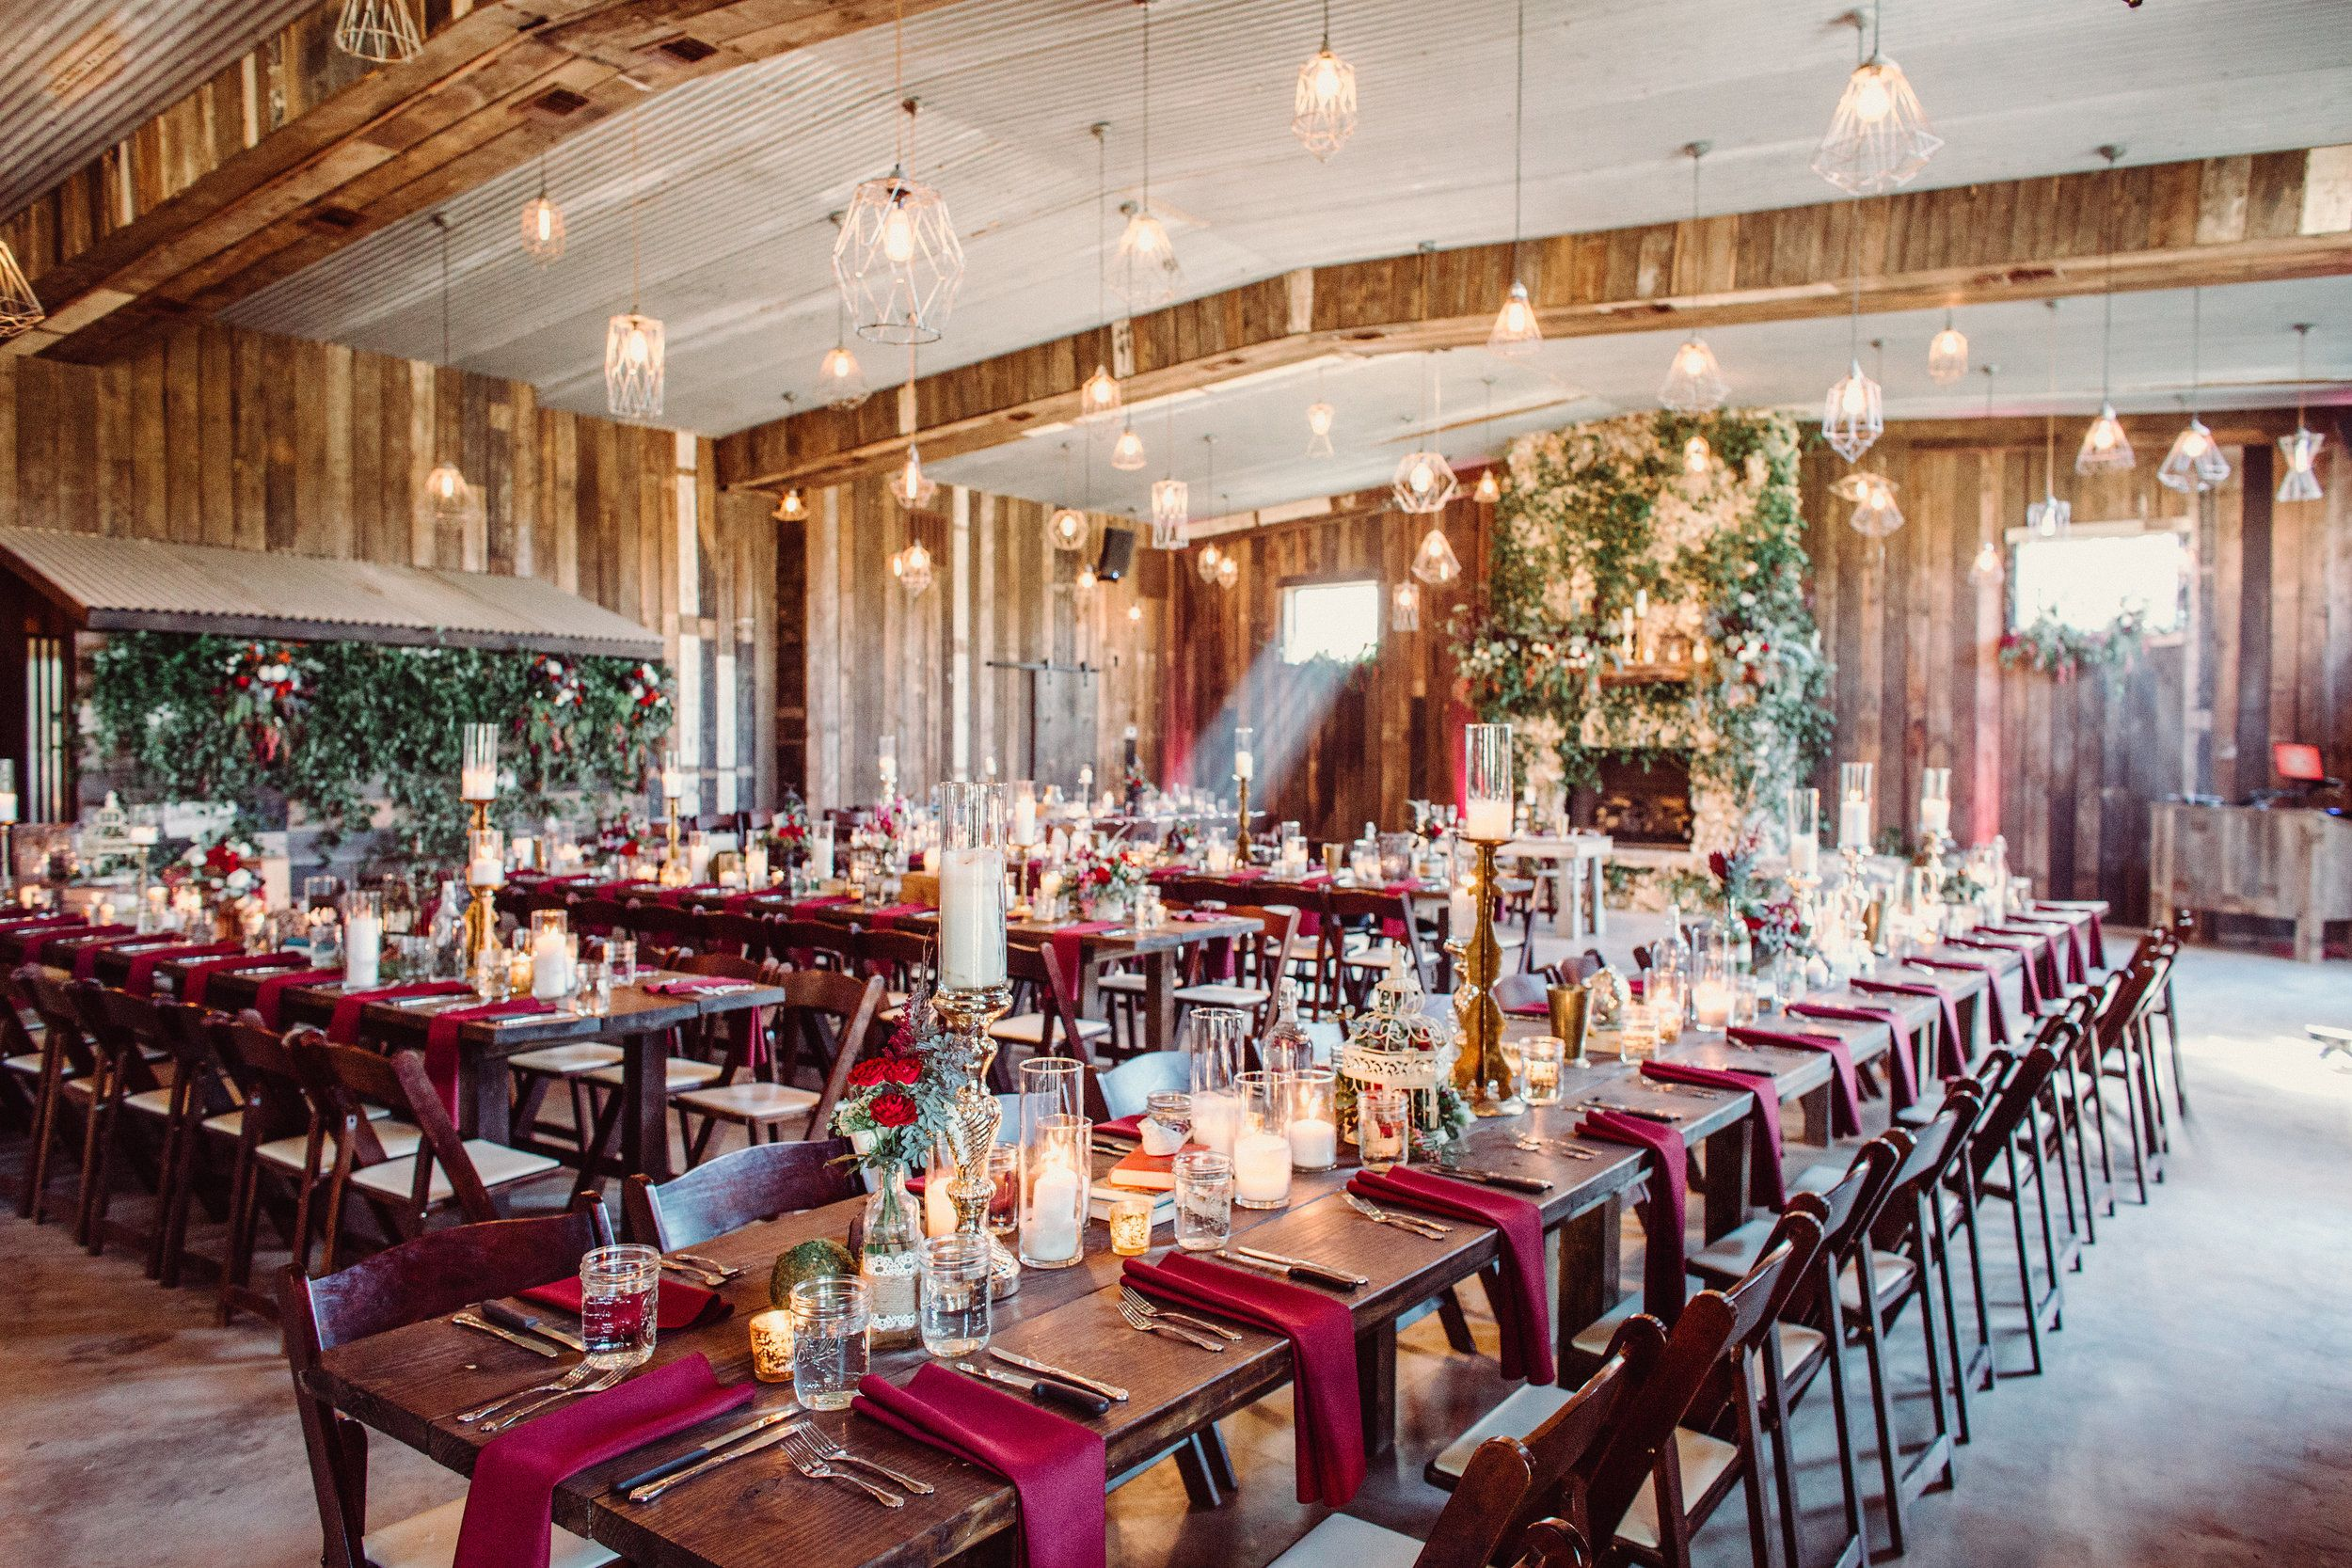 No plates Hill country wedding venues, Hill country